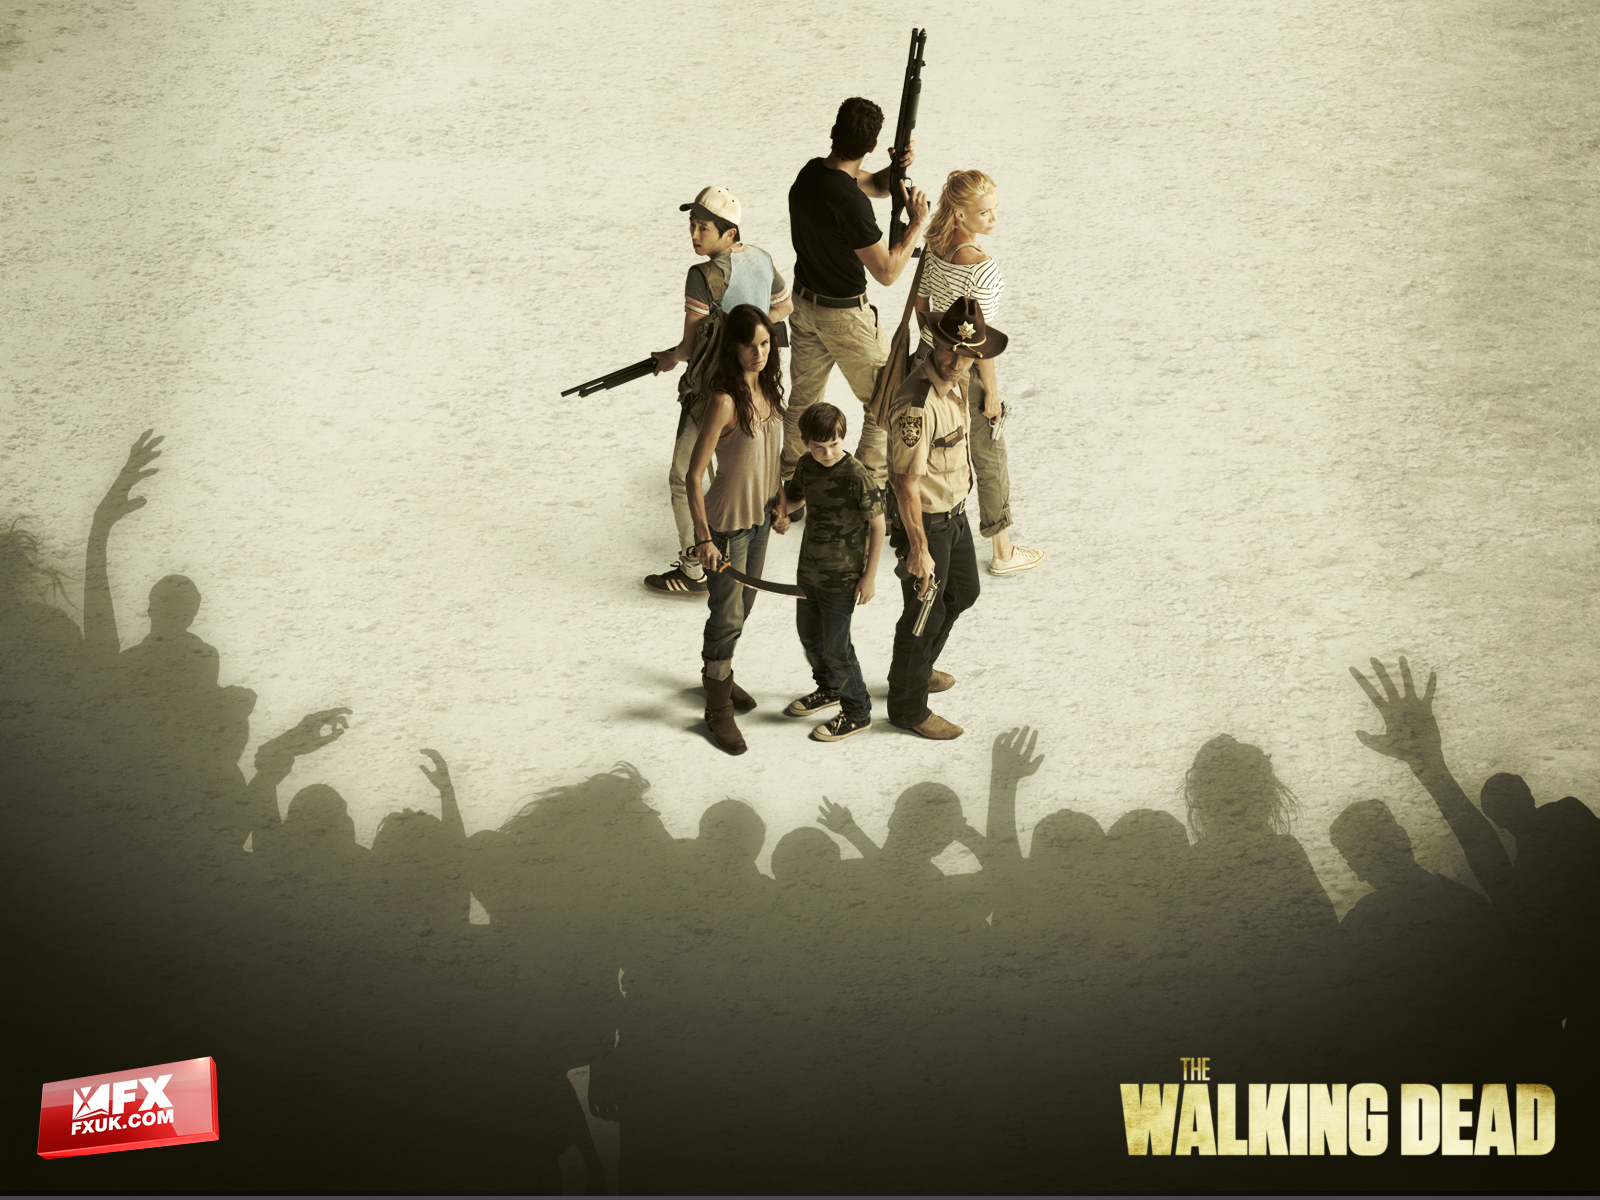 Walking Dead Wallpaper For Android: The Walking Dead Wallpaper For Android (58 Wallpapers